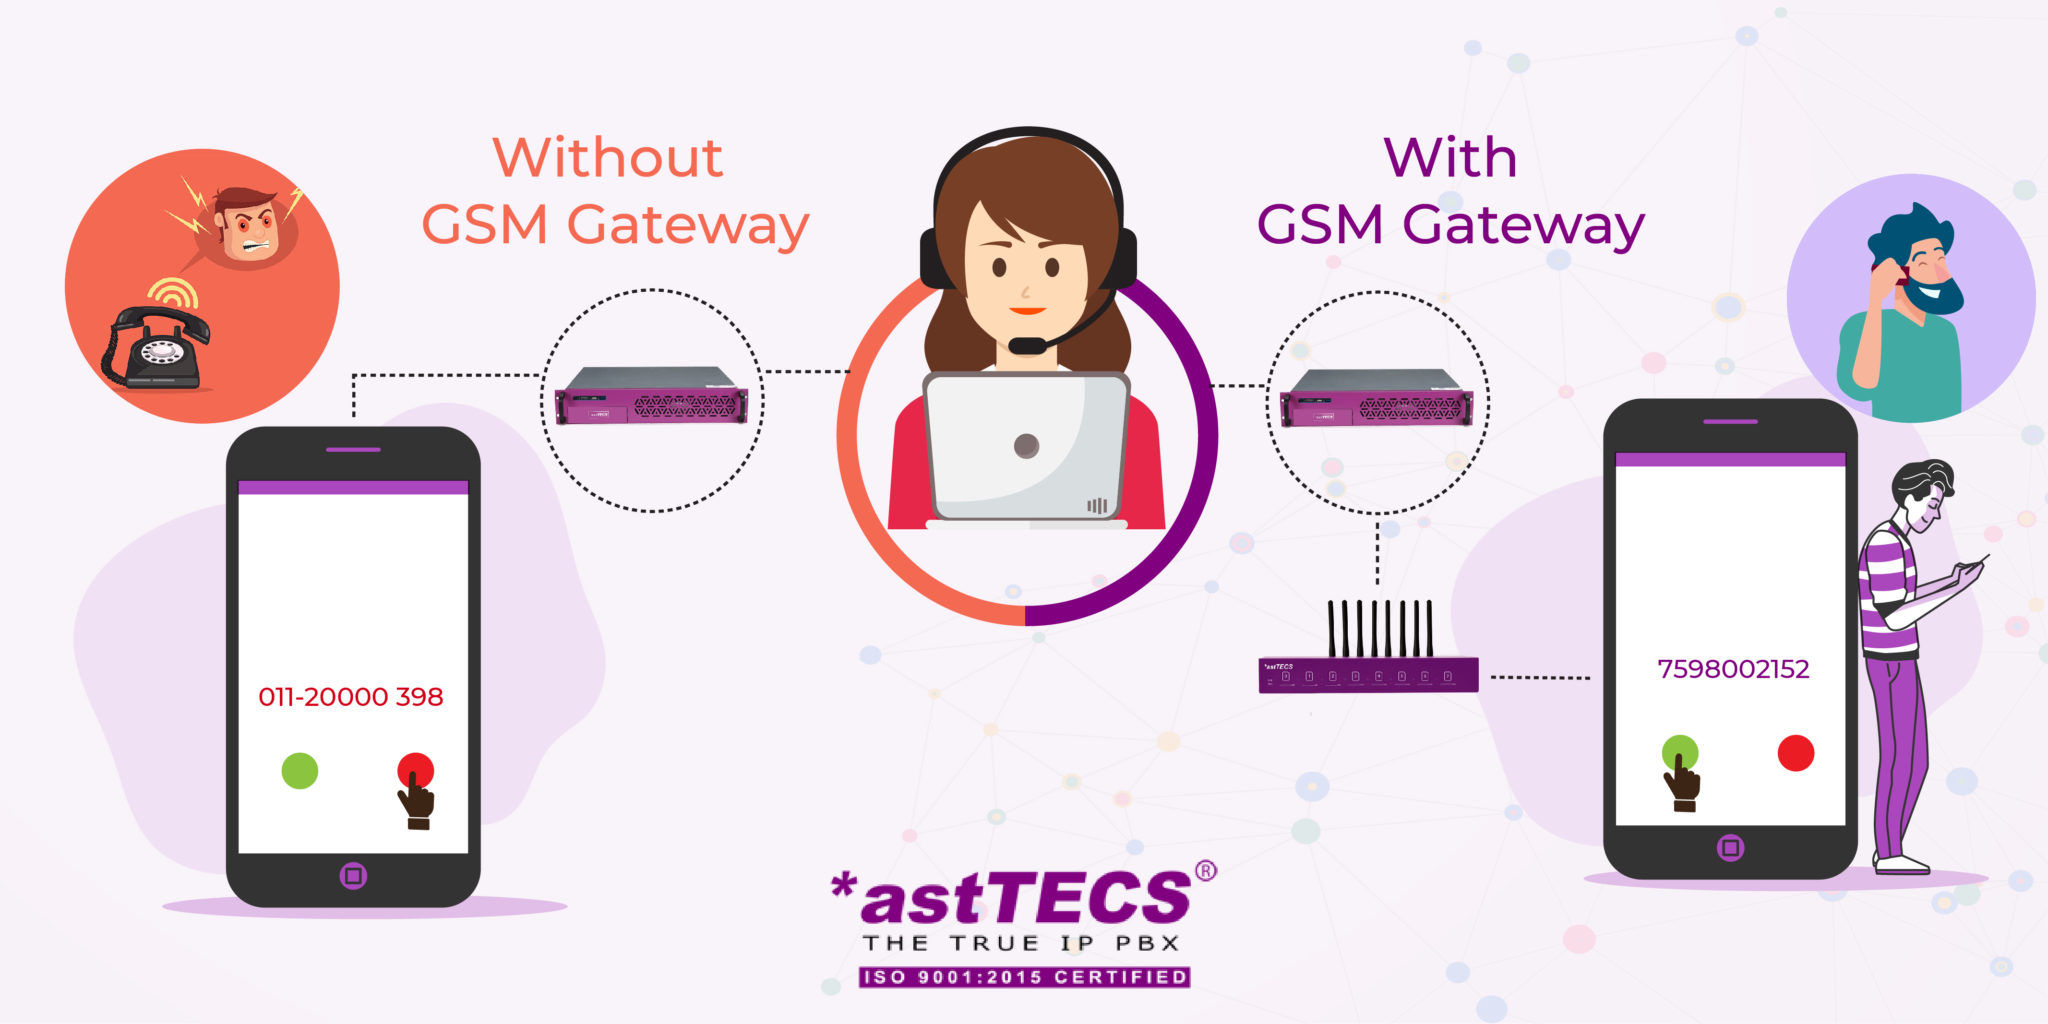 Advantages of Using GSM Gateway